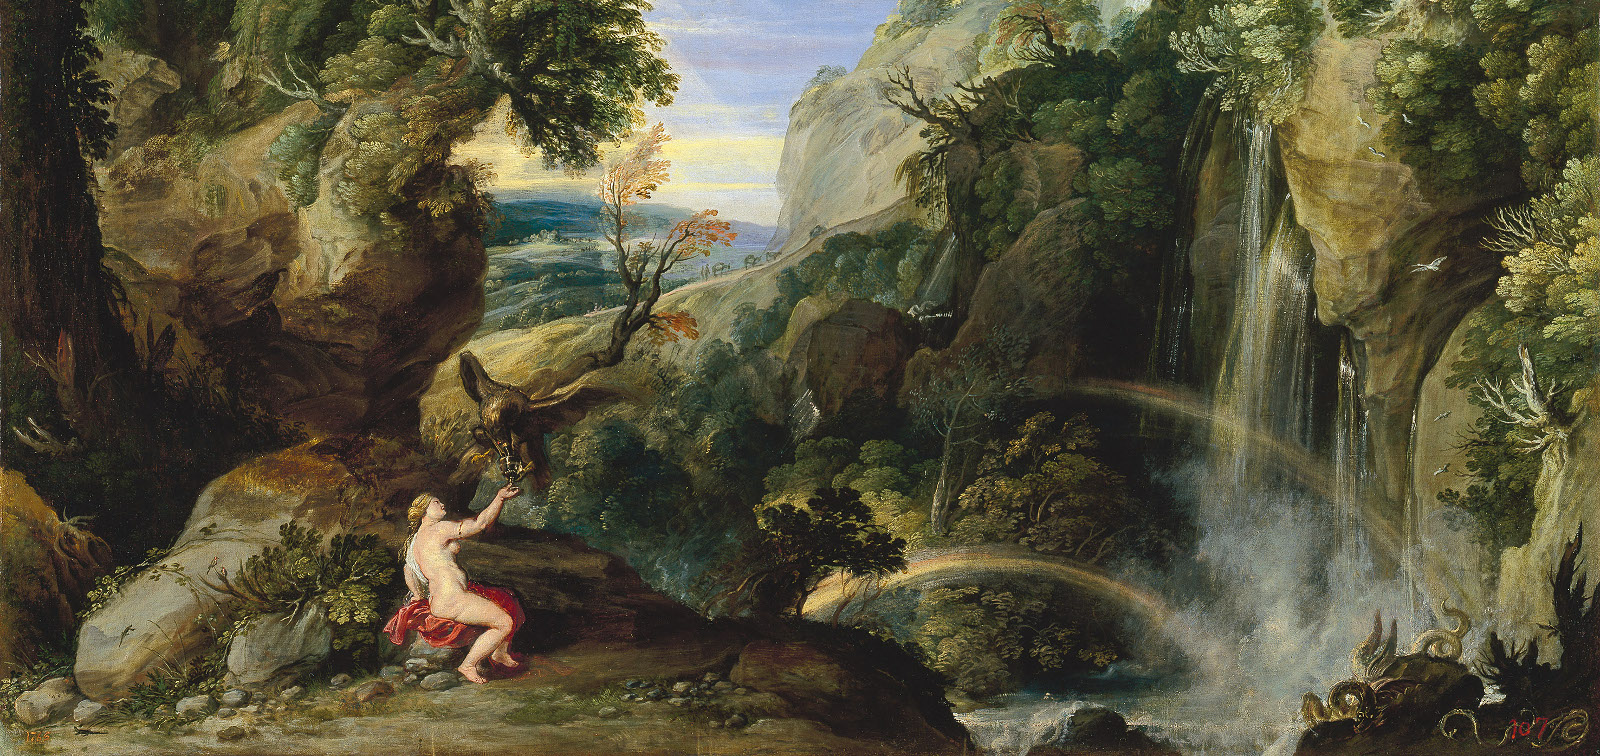 Rome: Nature and the Ideal. Landscapes 1600-1650